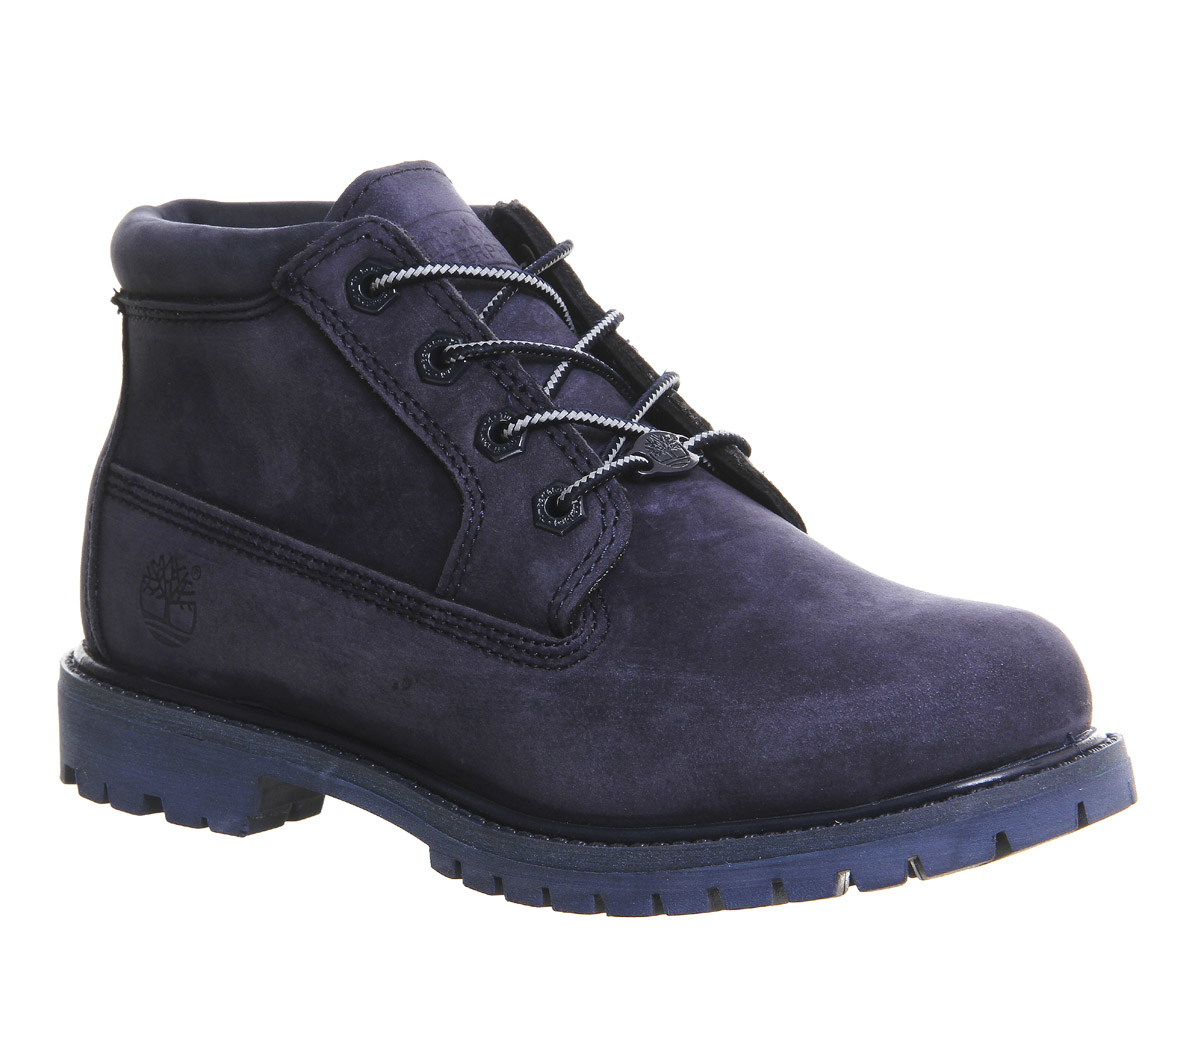 Wonderful 17 Best Ideas About Navy Blue Timberland Boots On Pinterest | Navy Blue Sneakers Navy Blue ...